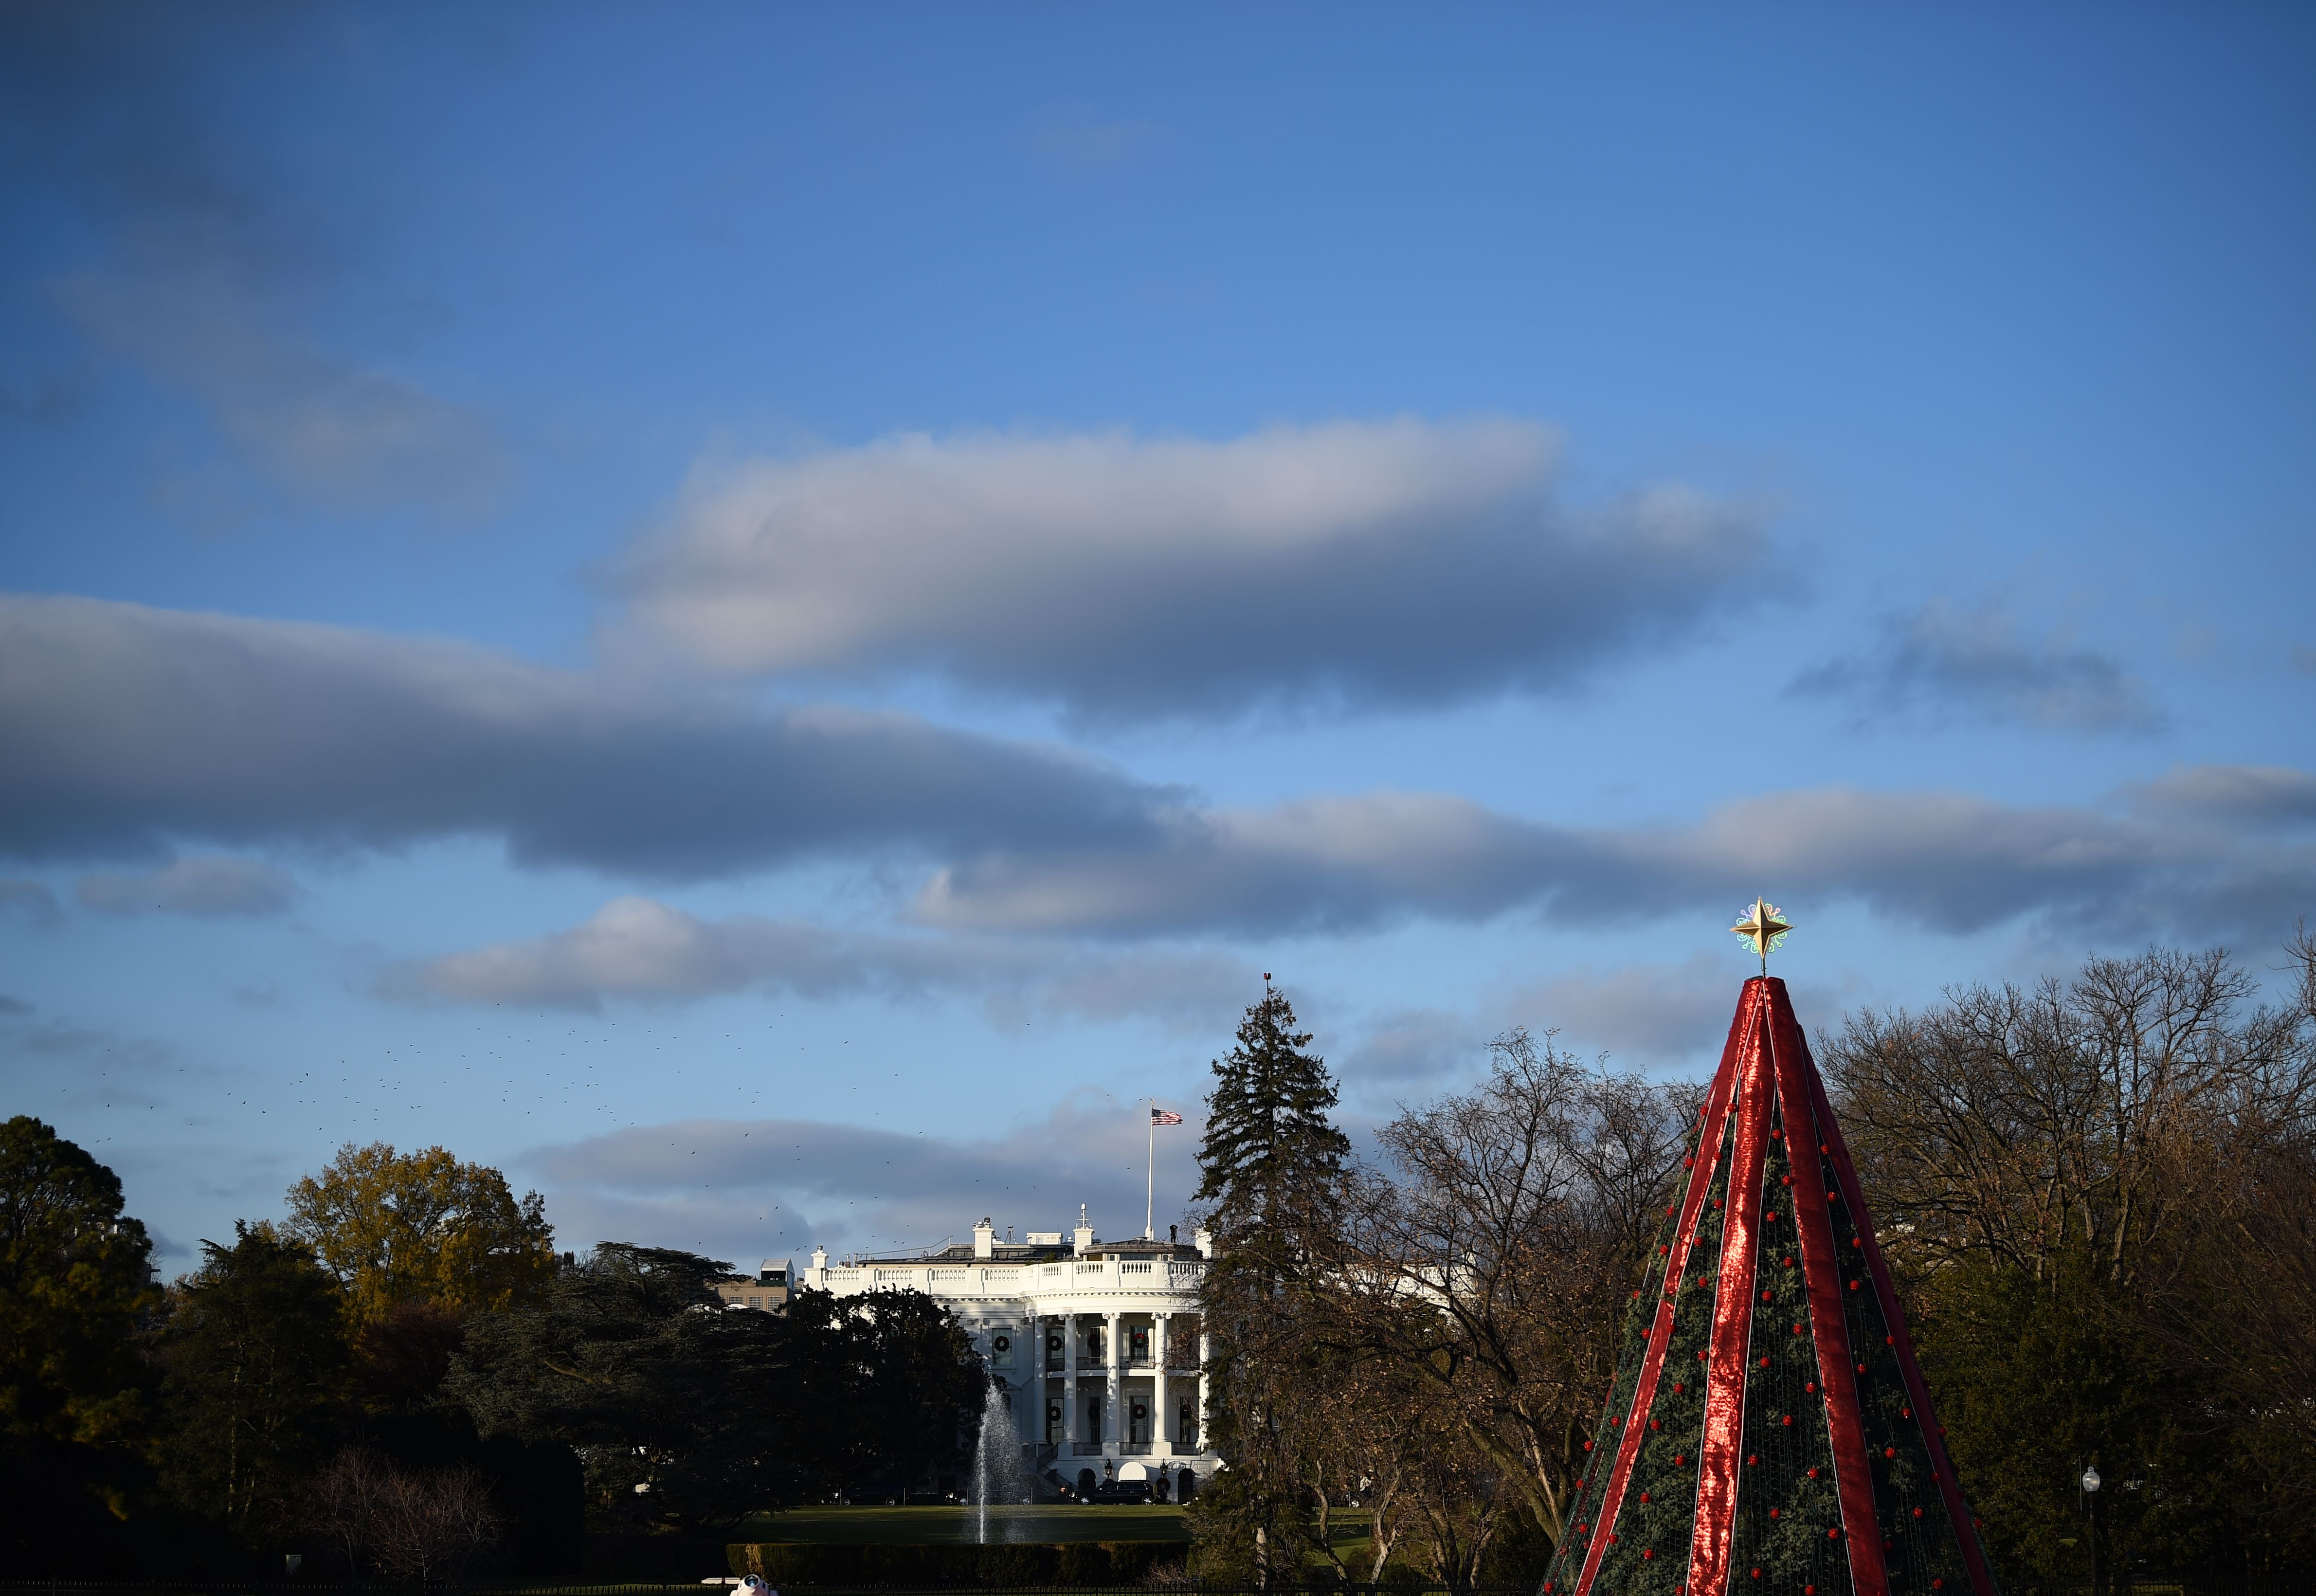 The National Christmas Tree in front of the White House